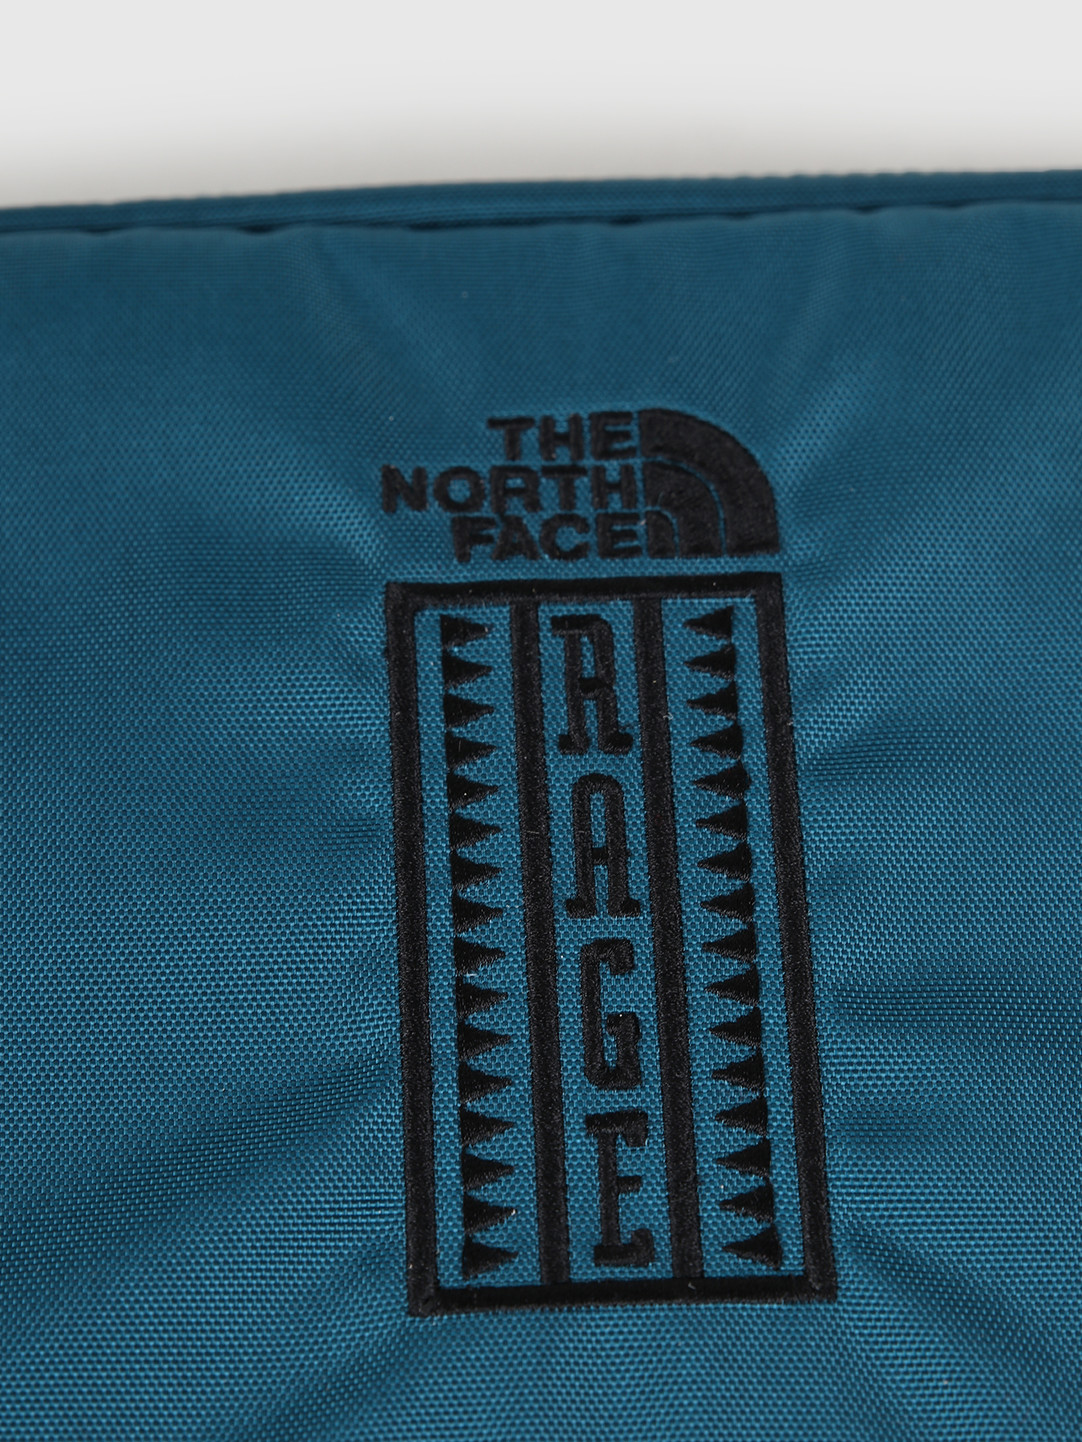 The North Face The North Face 92 Rage 'Em S Blue Coral Black T93KXDES3